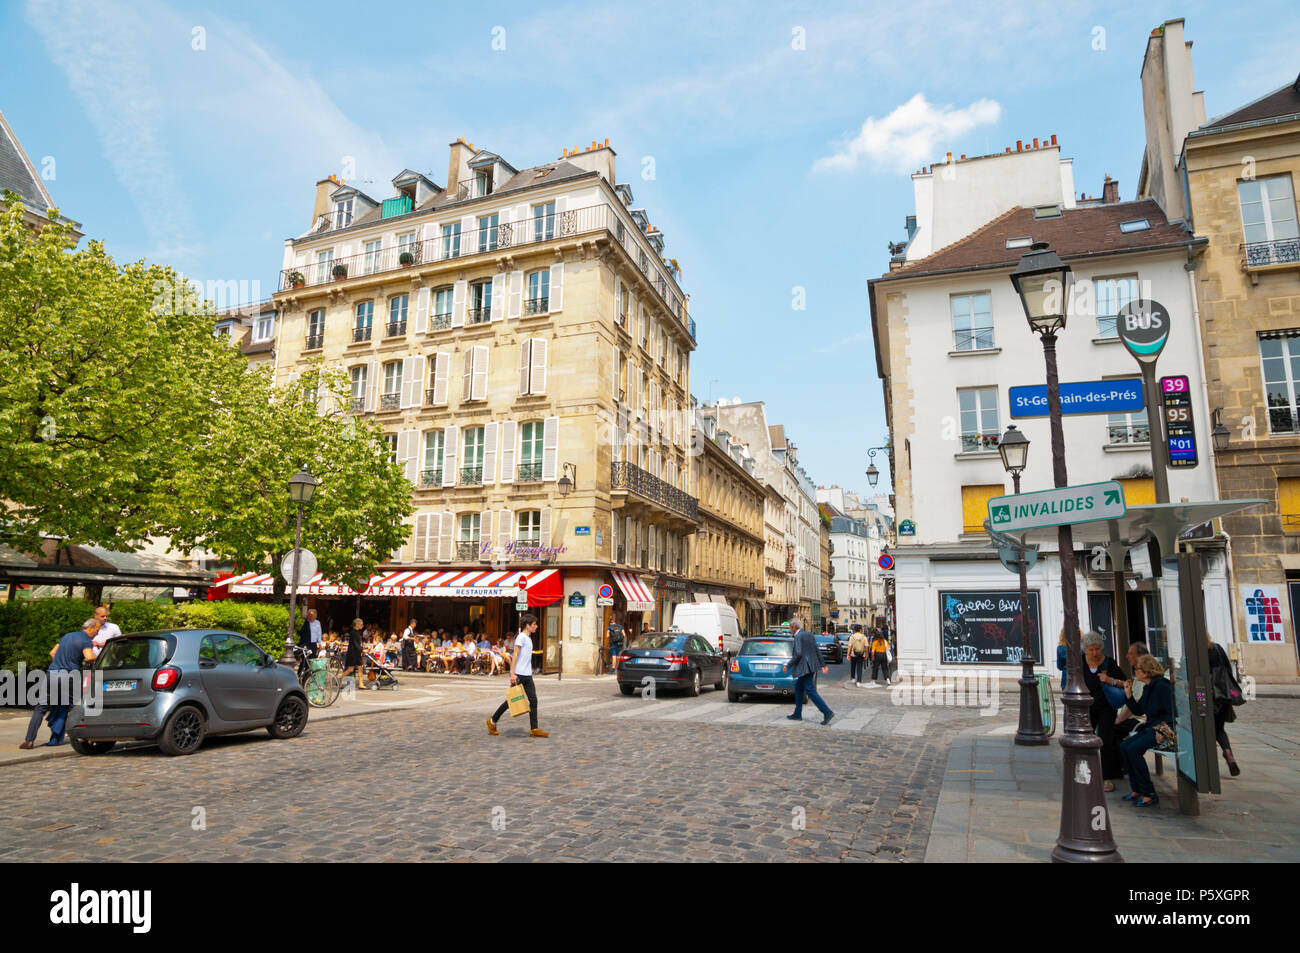 Place Saint Germain des Pres, St Germain des Pres, Left Bank, Paris, France - Stock Image